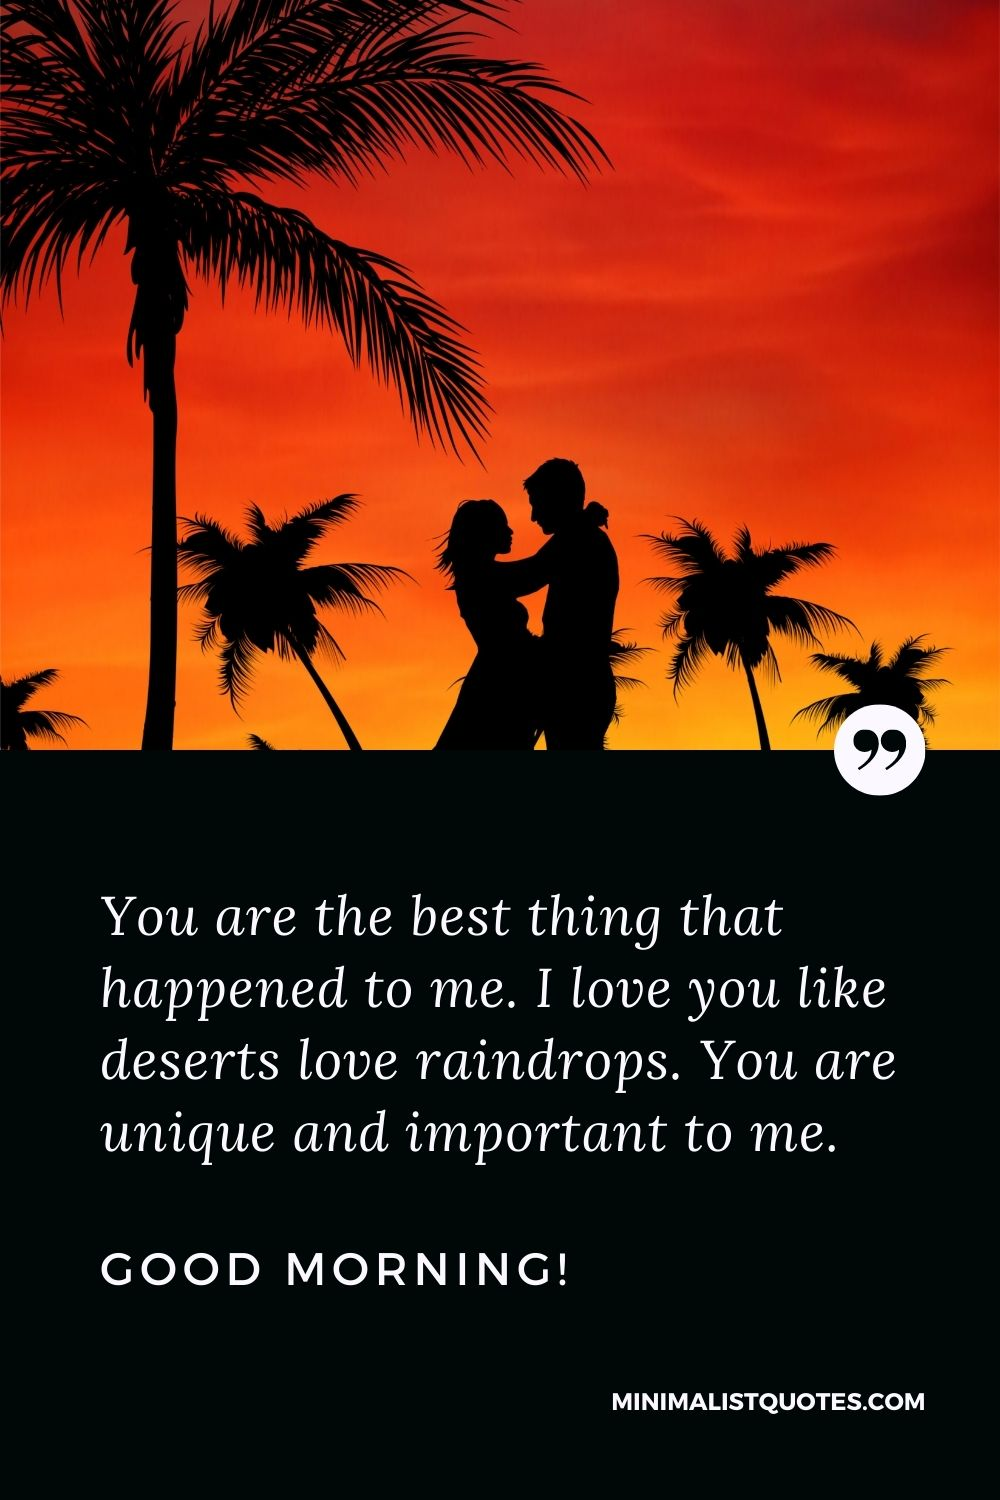 Good morning text messages for him: You are the best thing that happened to me. I love you like deserts love raindrops. You are unique and important to me. Good Morning!